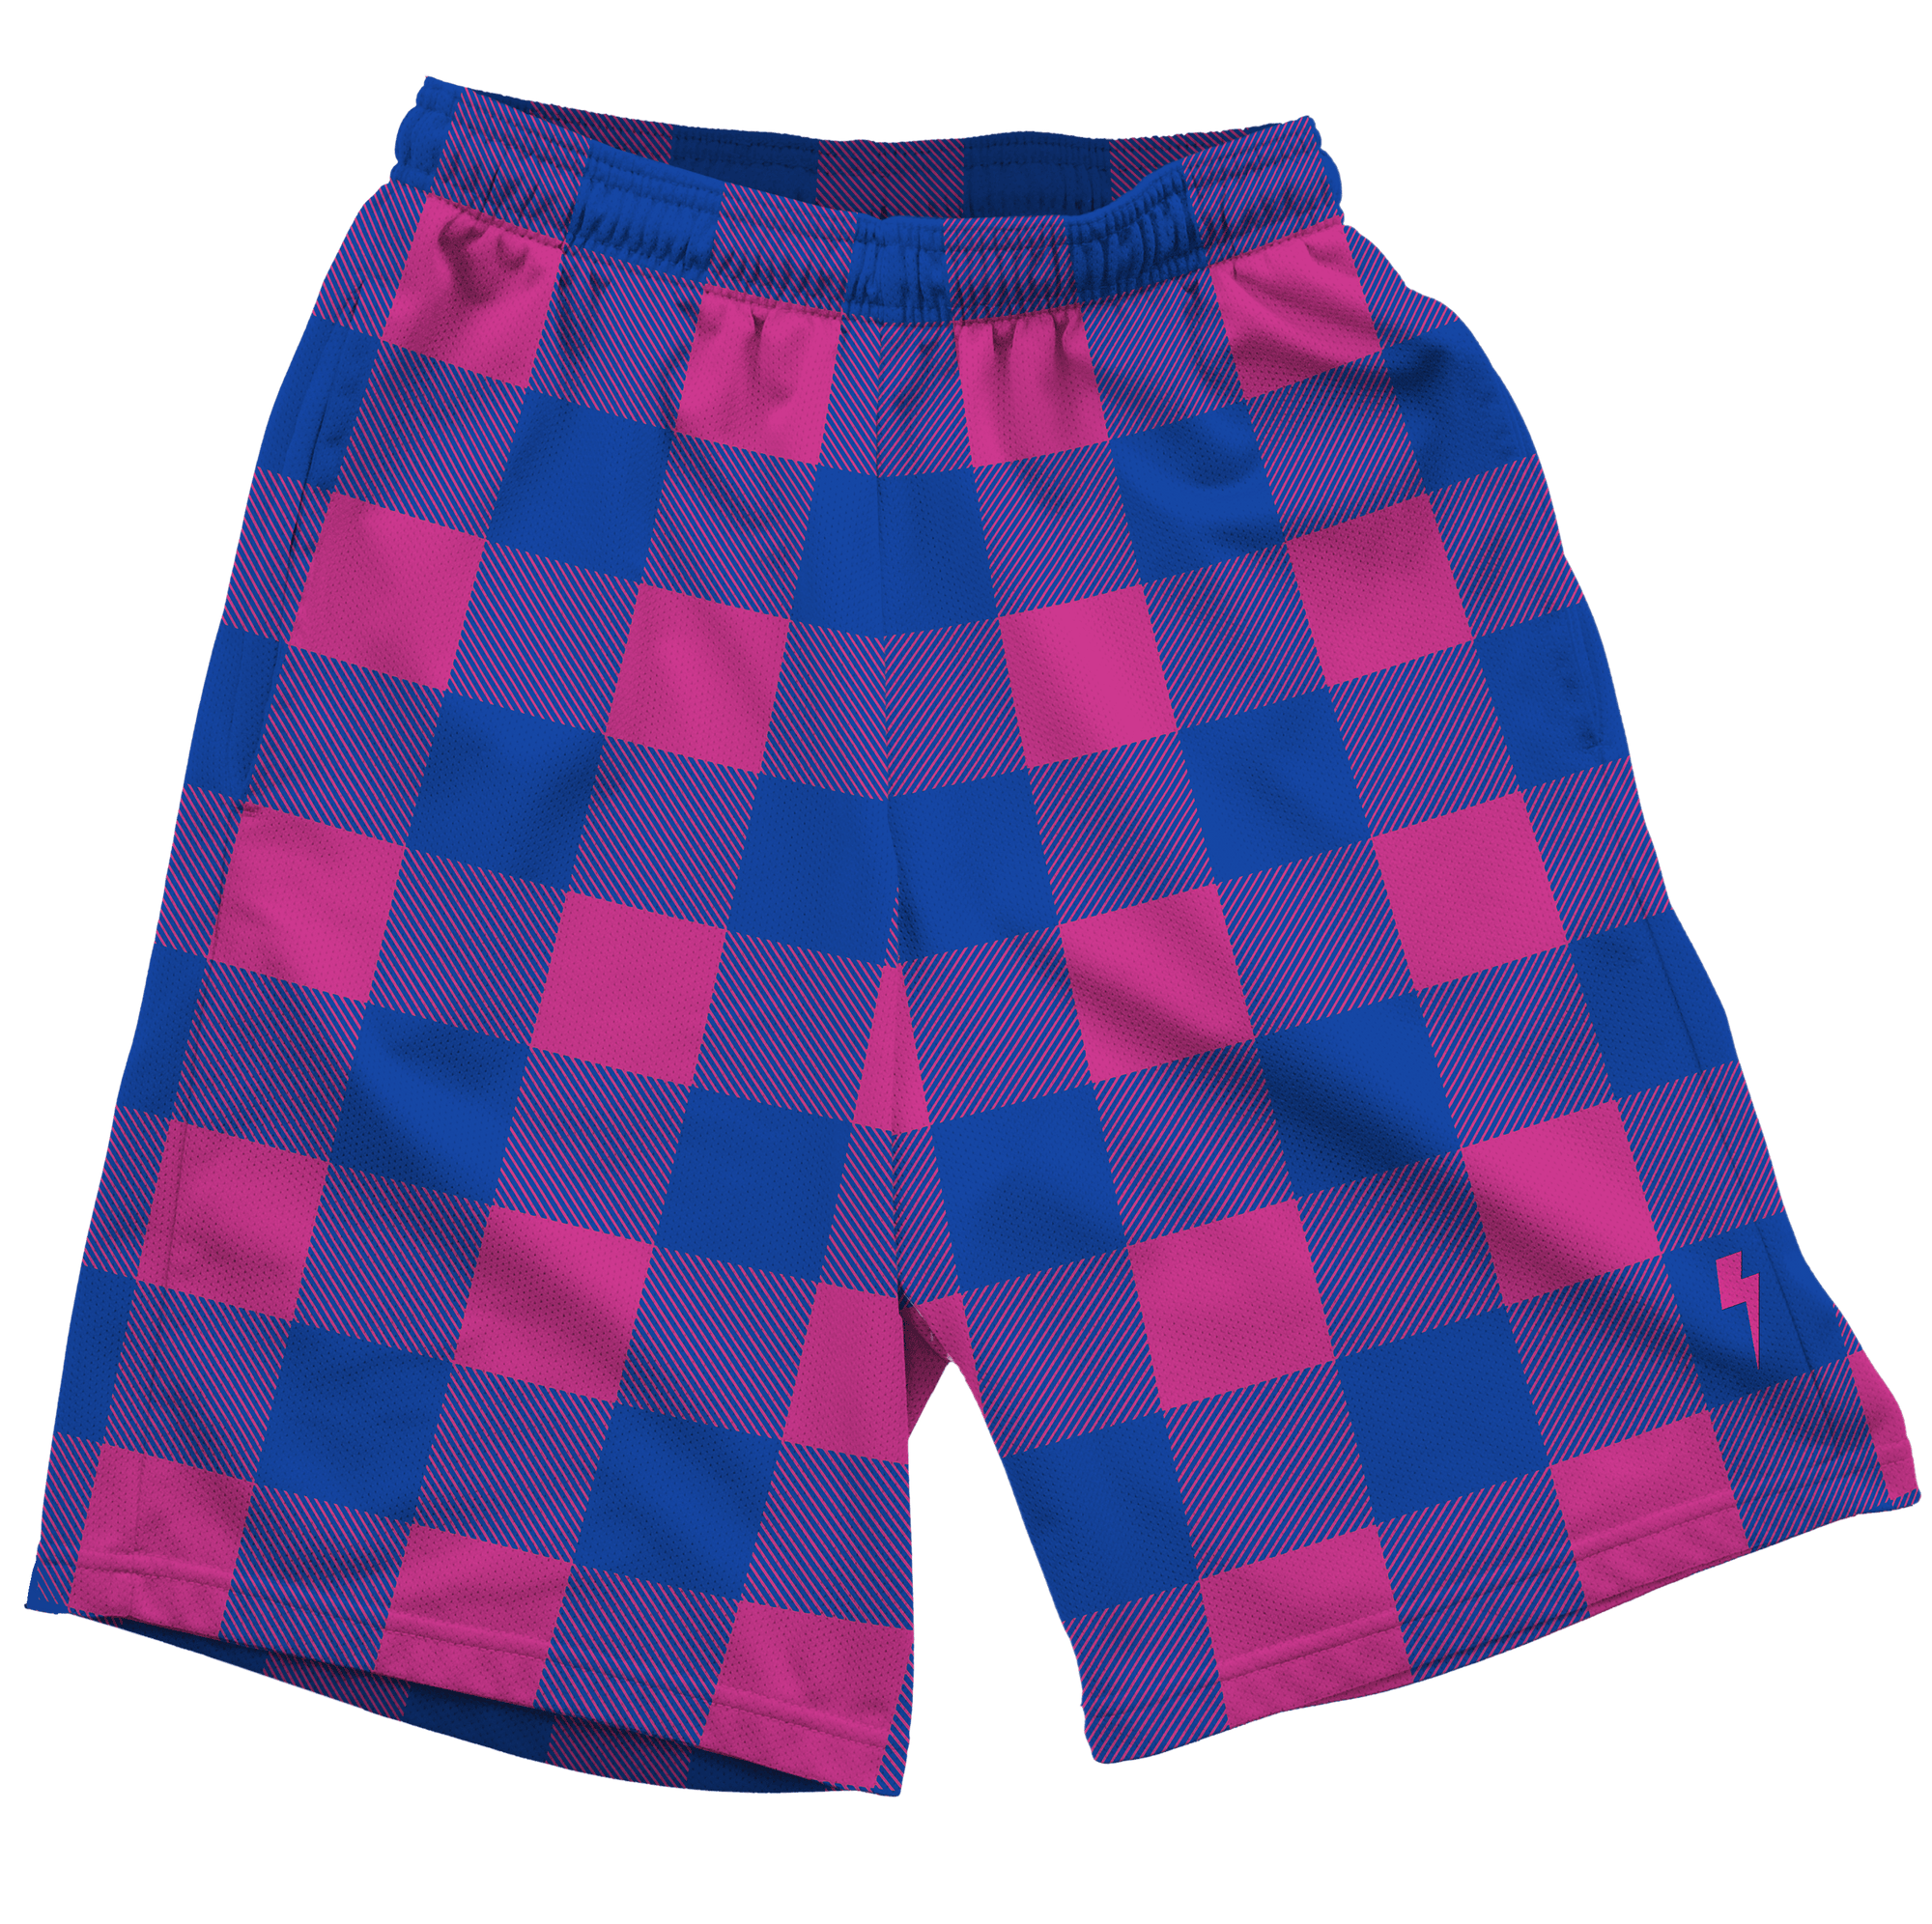 Neon Pink & Blue Shorts Mens Shorts T6